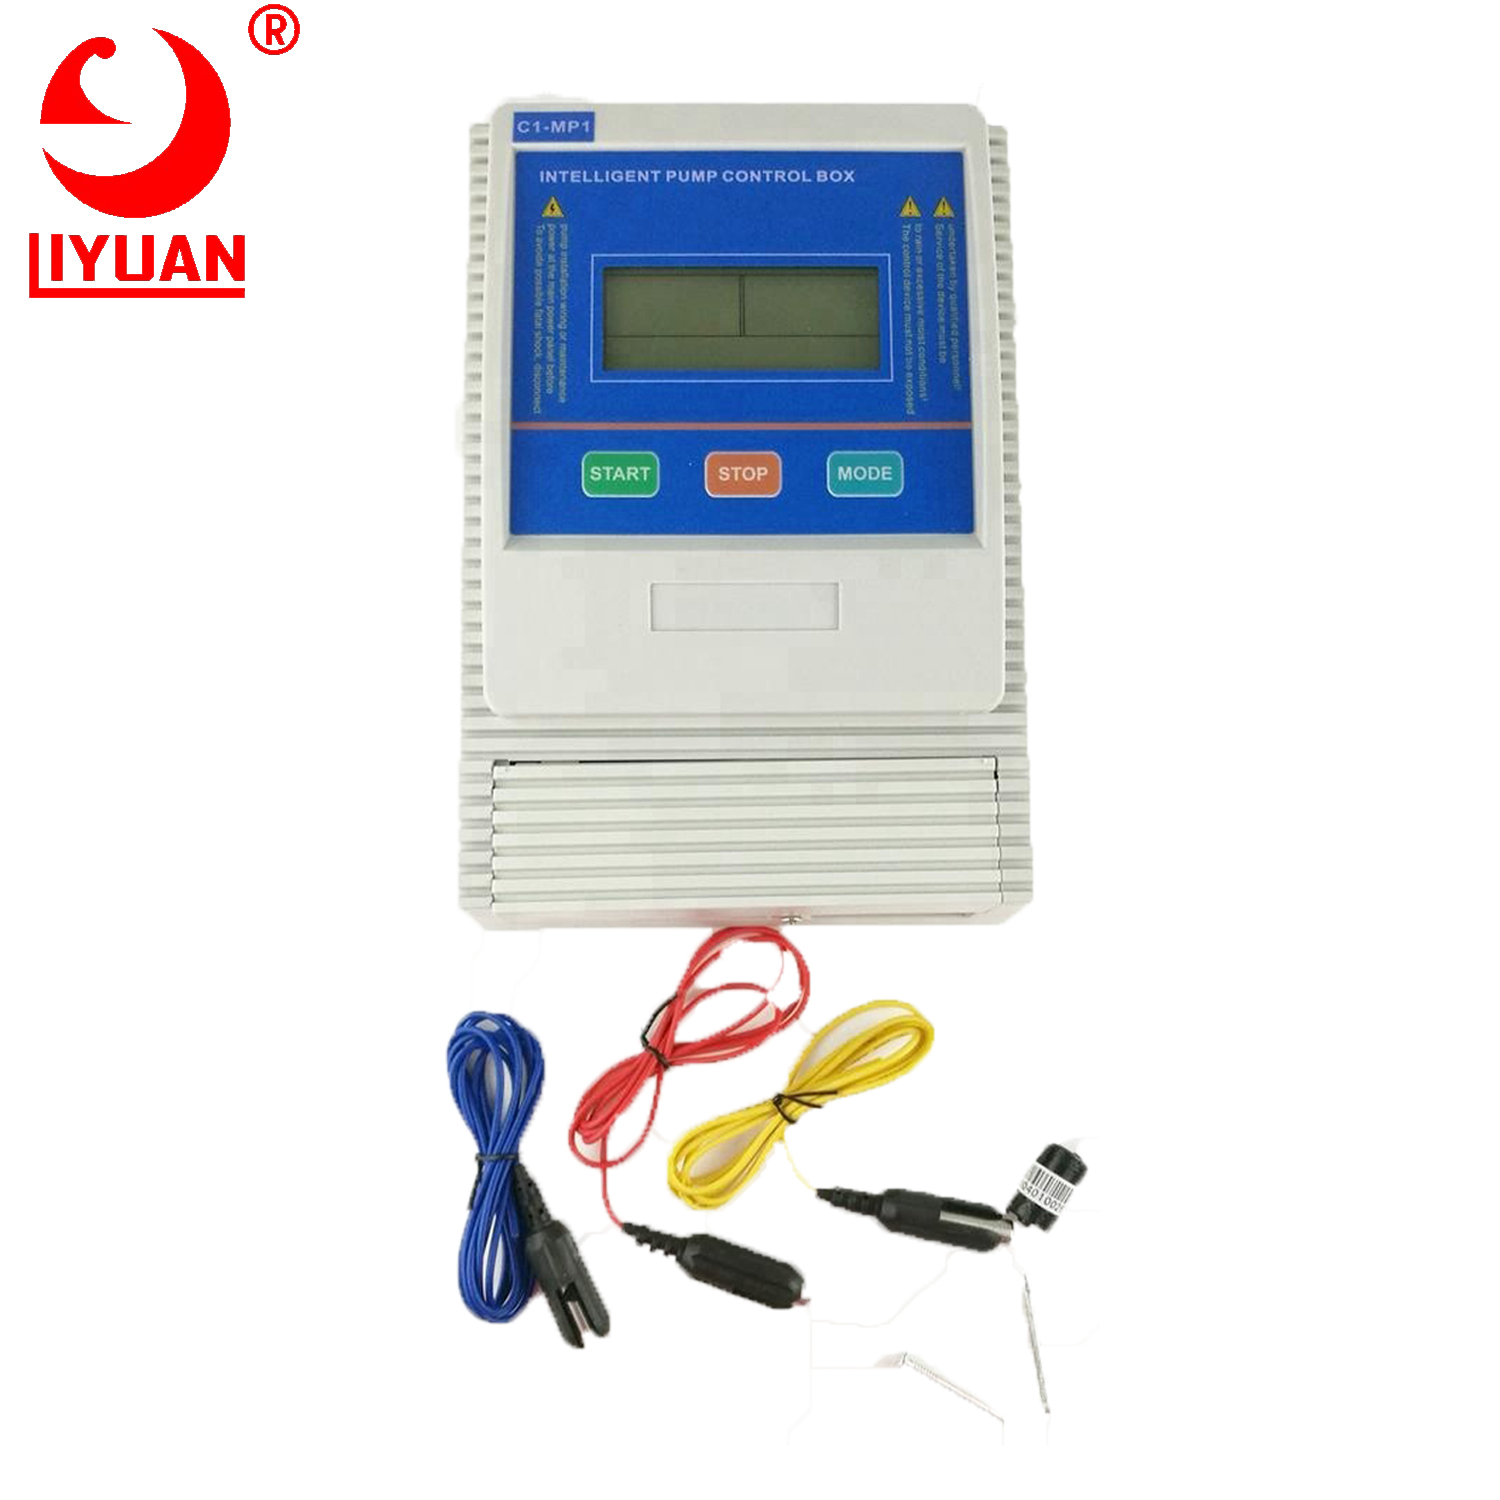 Electronic Pressure Control, Remote Control Switch